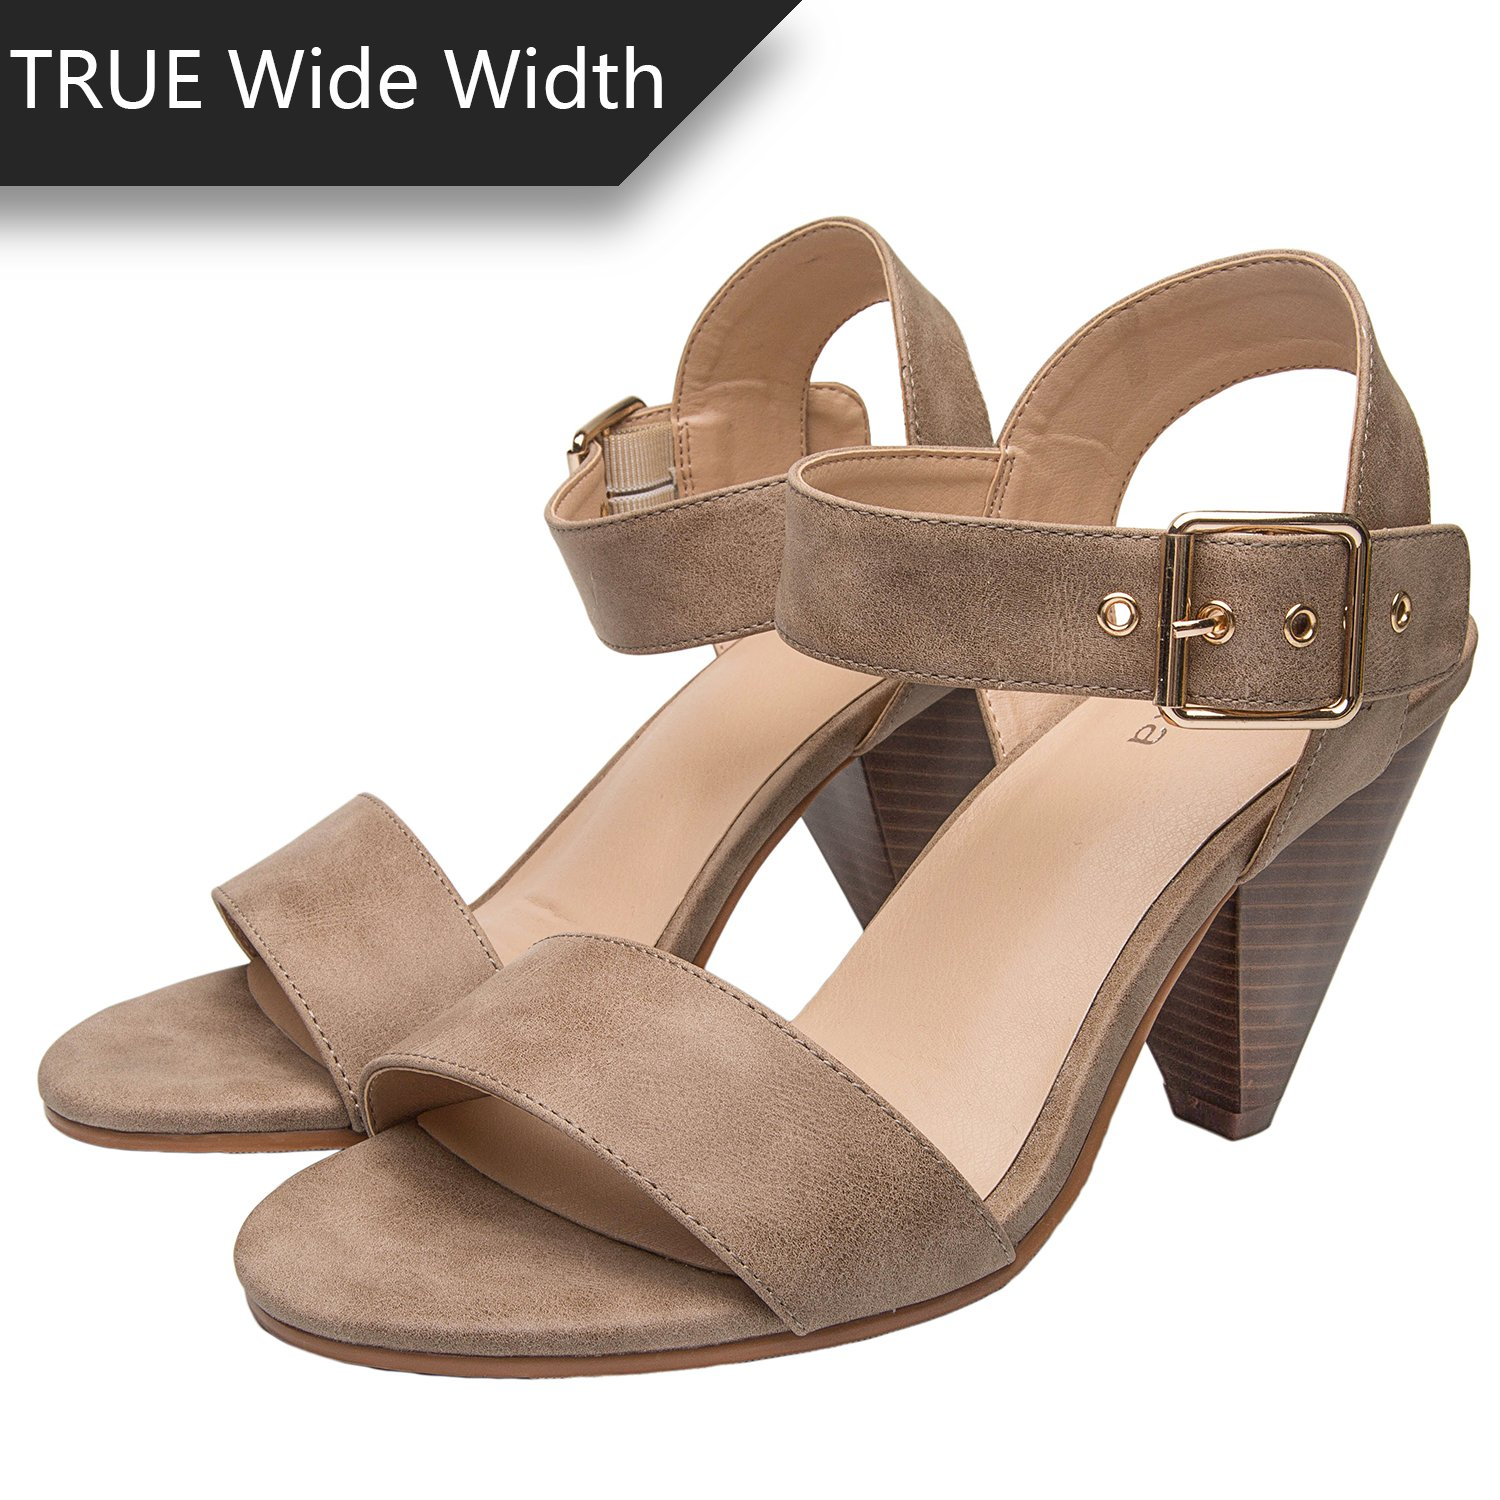 c3f6036c0c12 Luoika Womens Wide Width Heeled Sandals - Classic Low Block Heel Open Toe  Ankle Strap Suede Summer ...